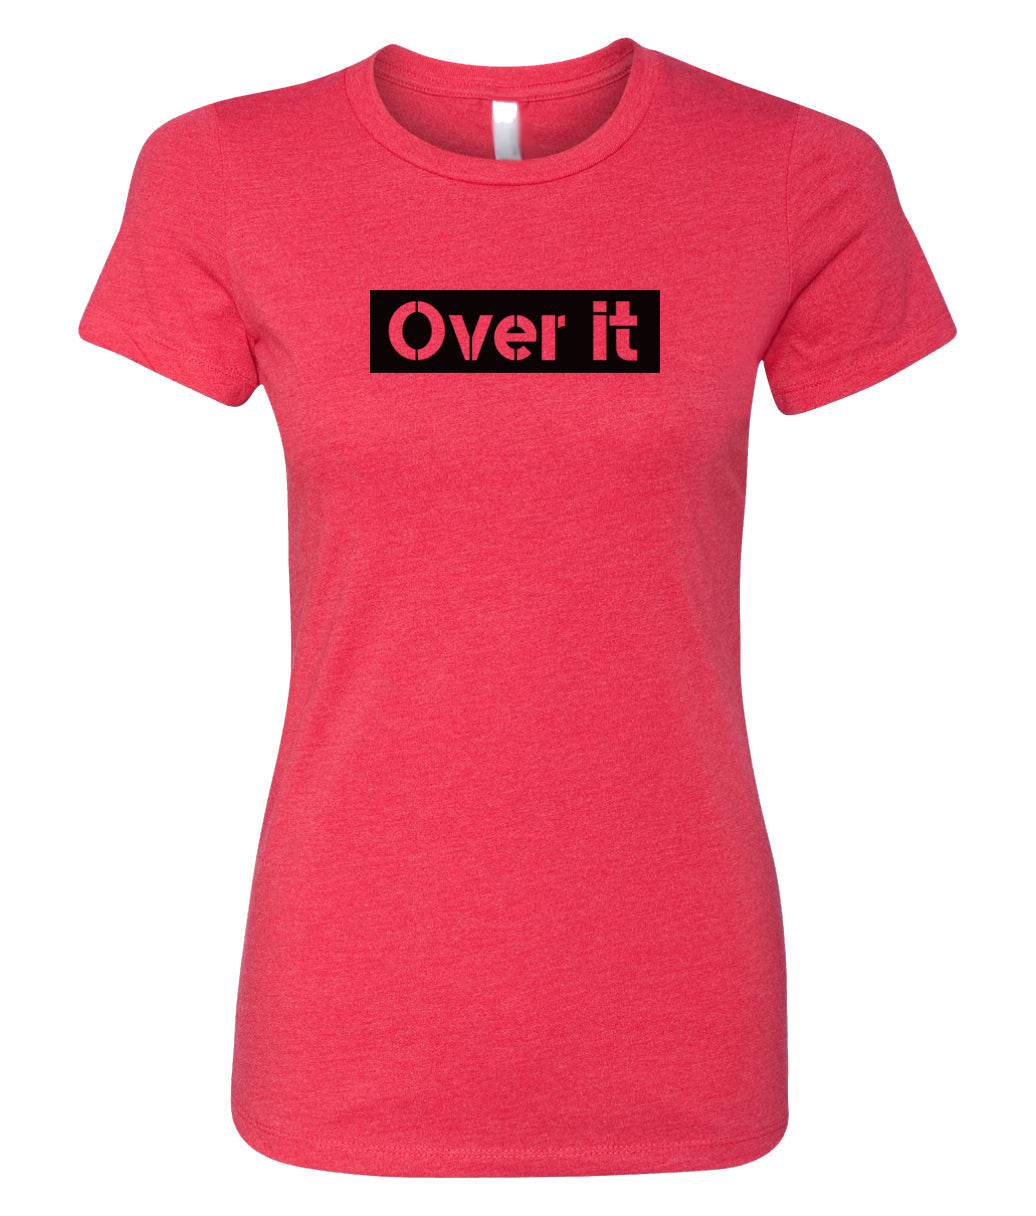 red over it crewneck women's t shirt